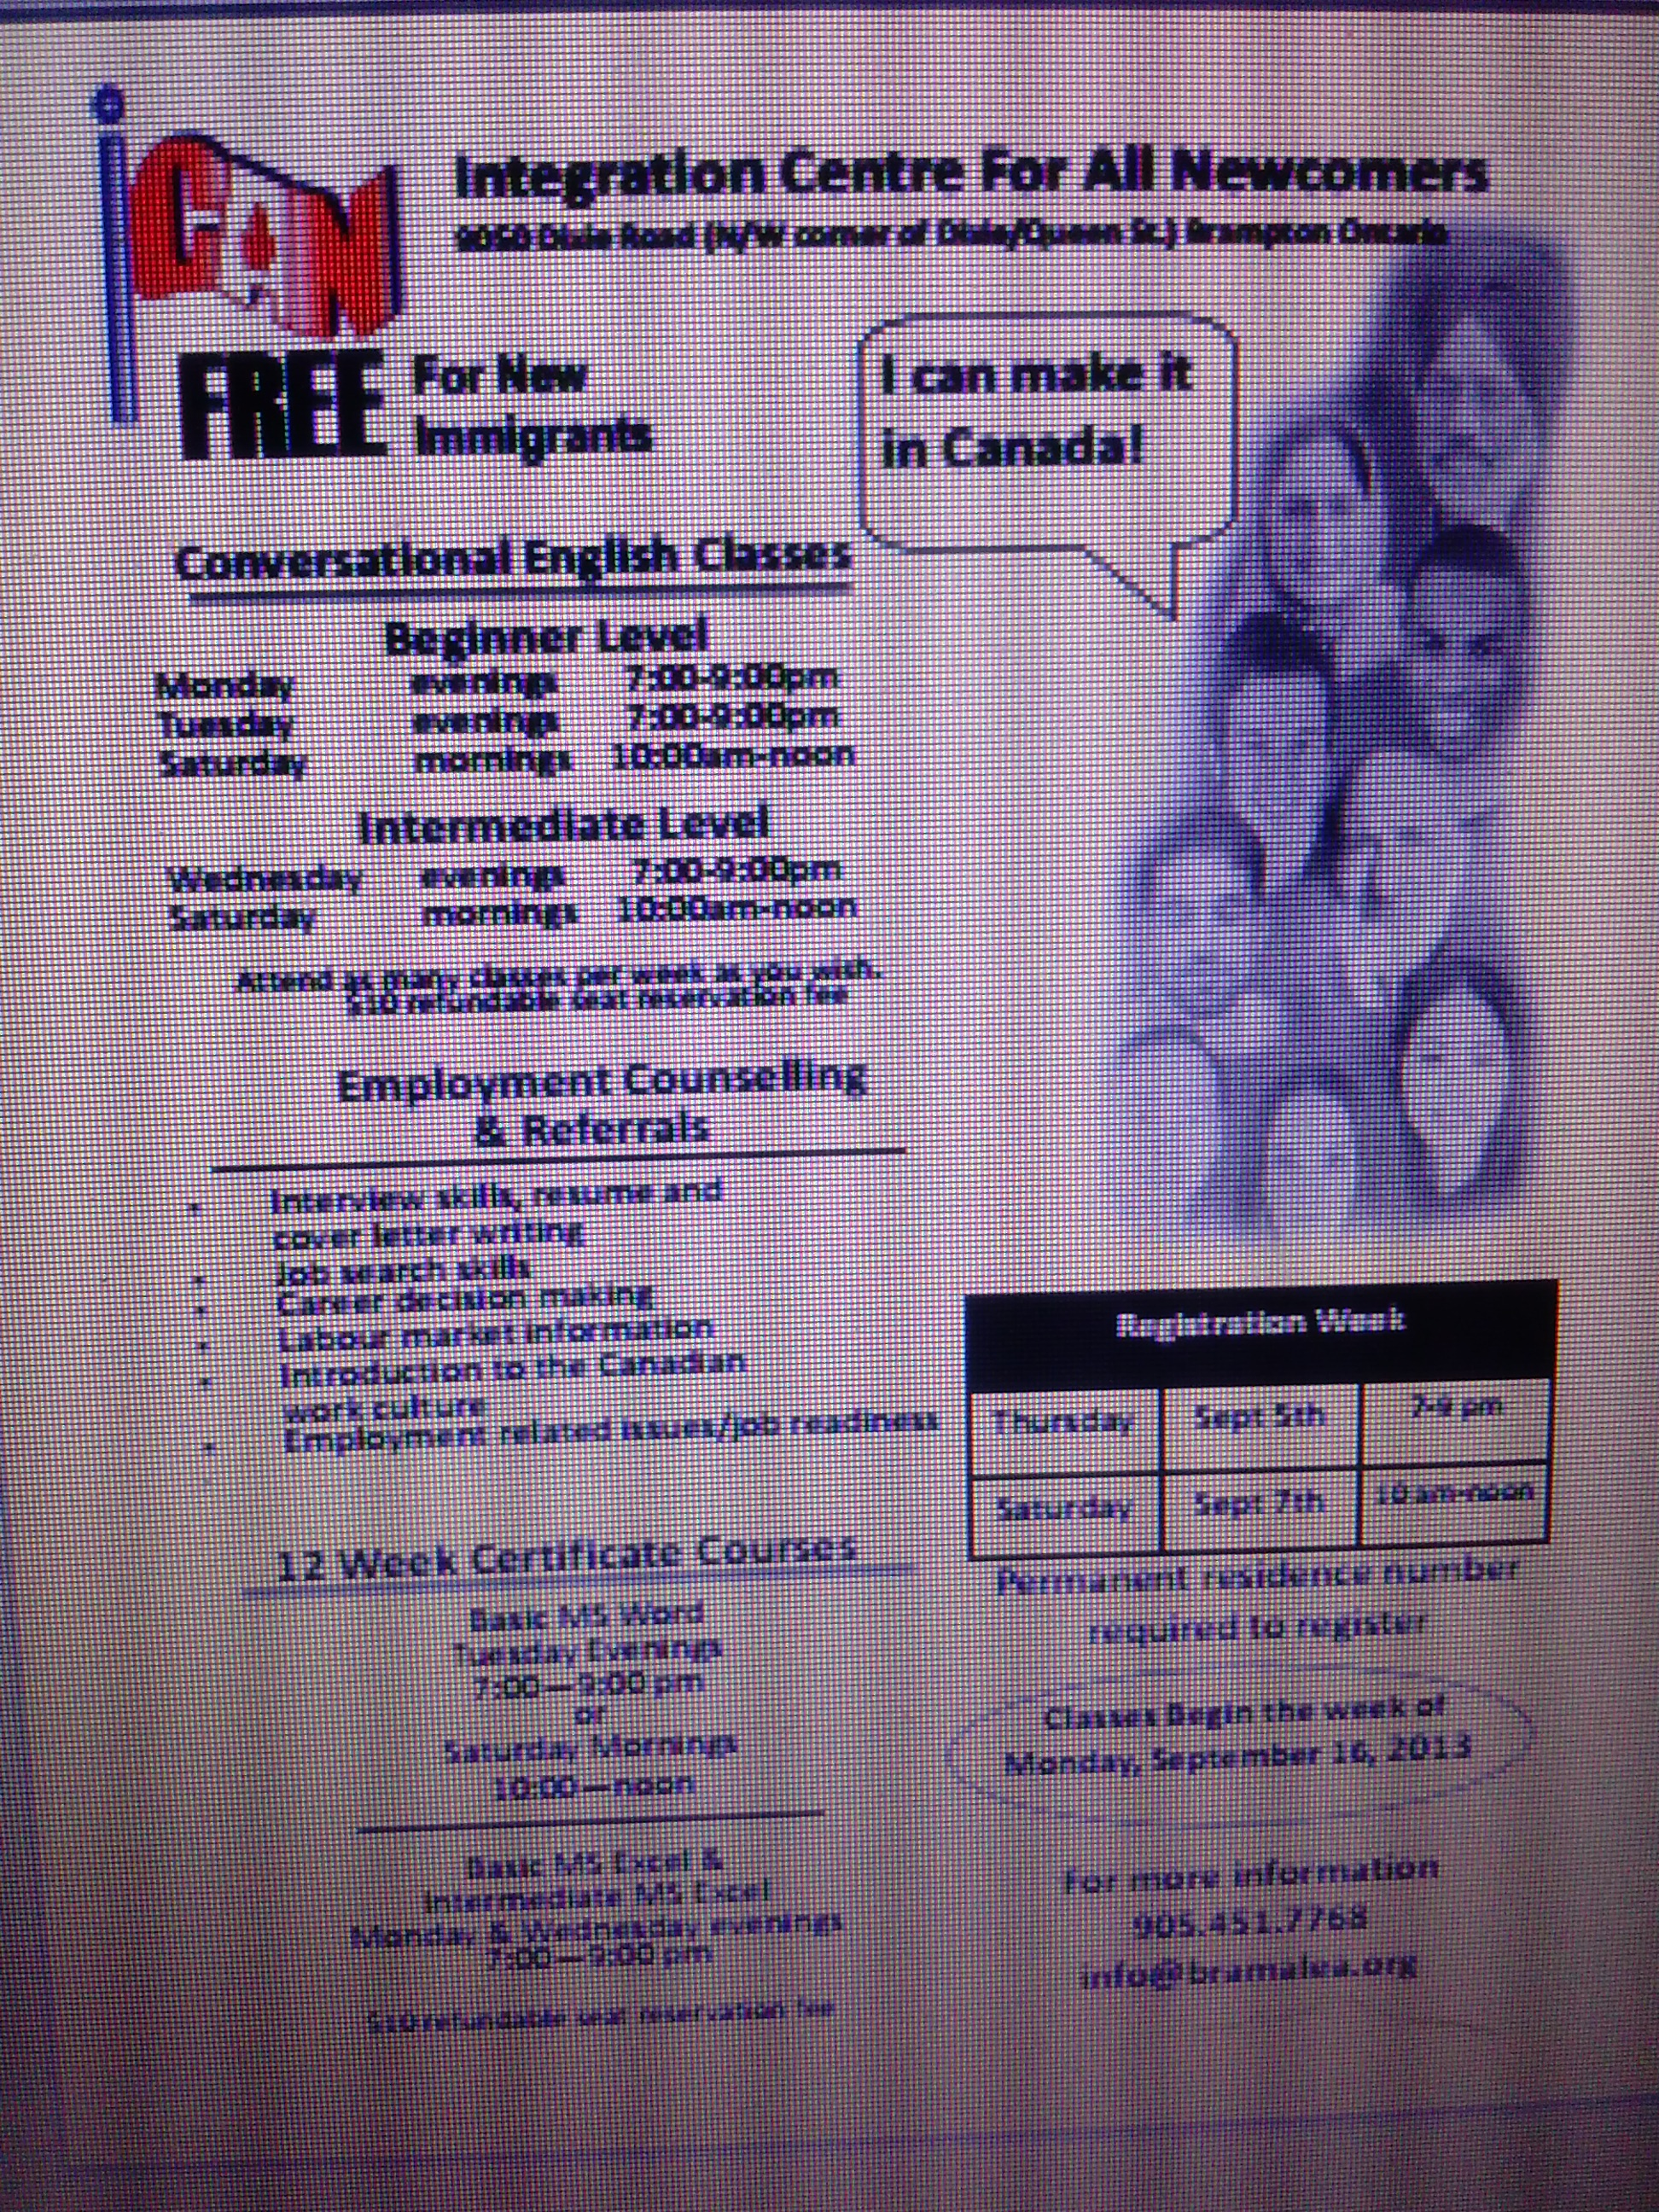 FREE ENGLISH & COMPUTER CLASSES FOR NEWCOMERS - Ican Pics 001